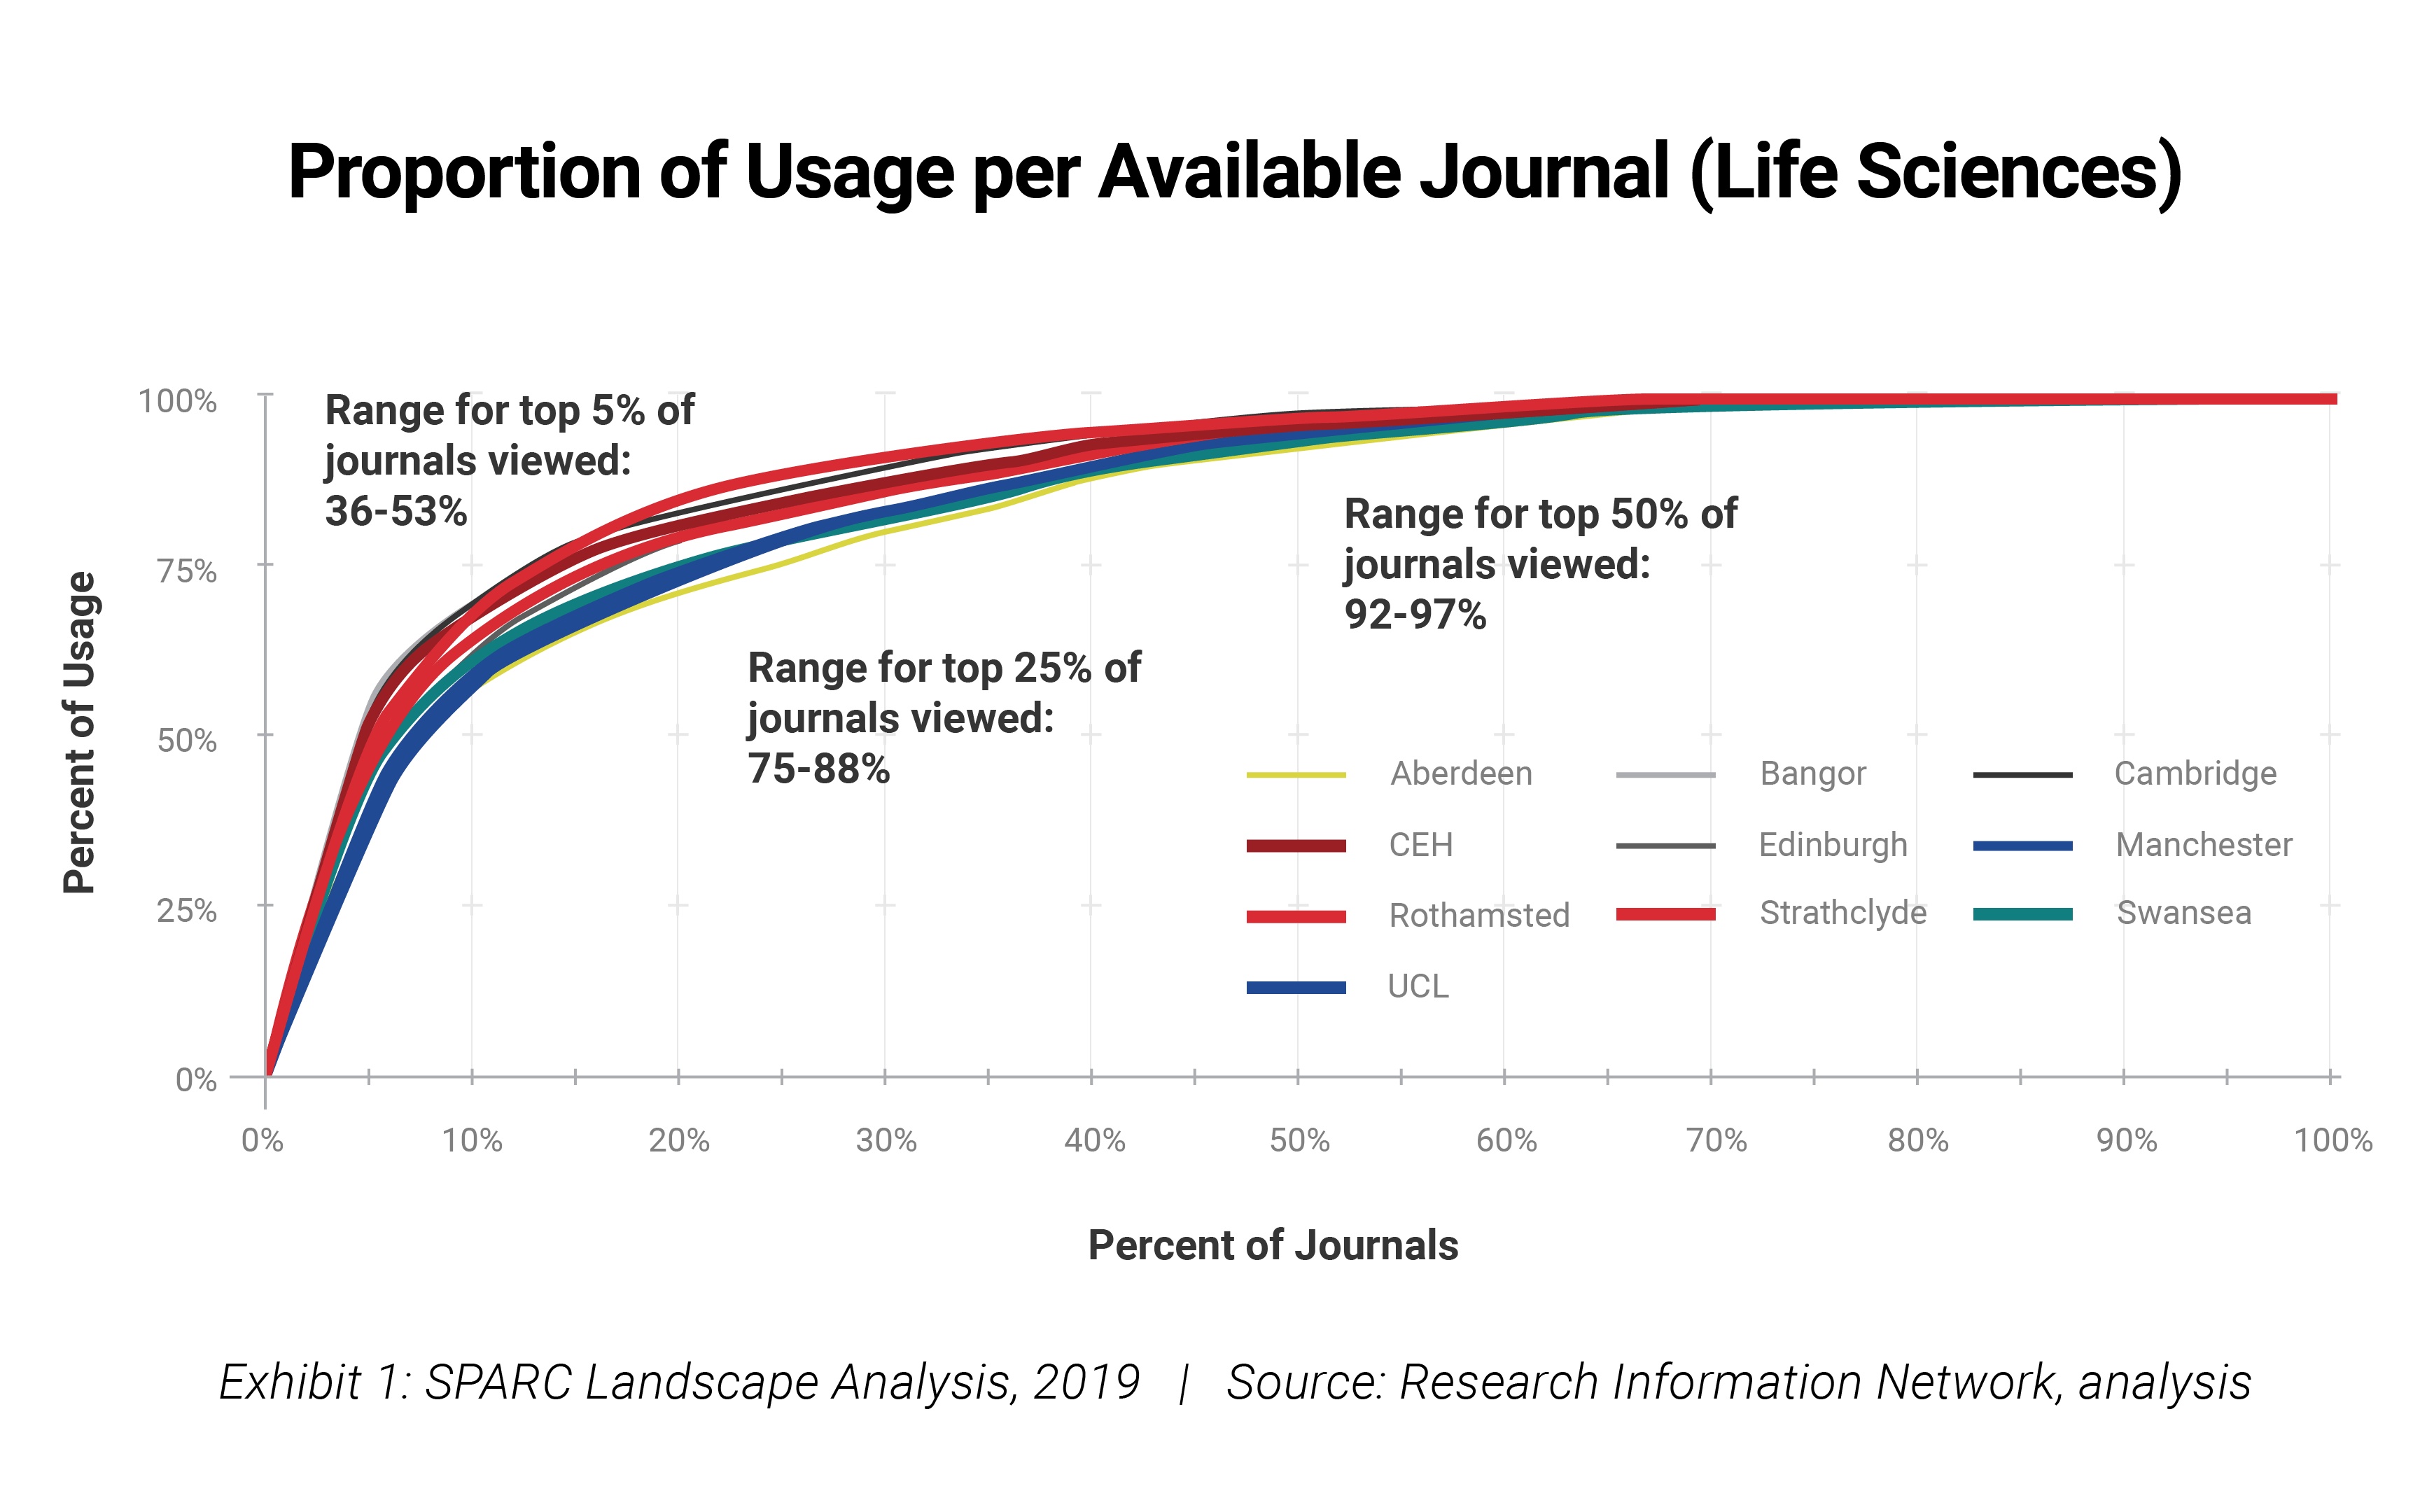 Life Sciences: Proportion of Usage per Available Journals